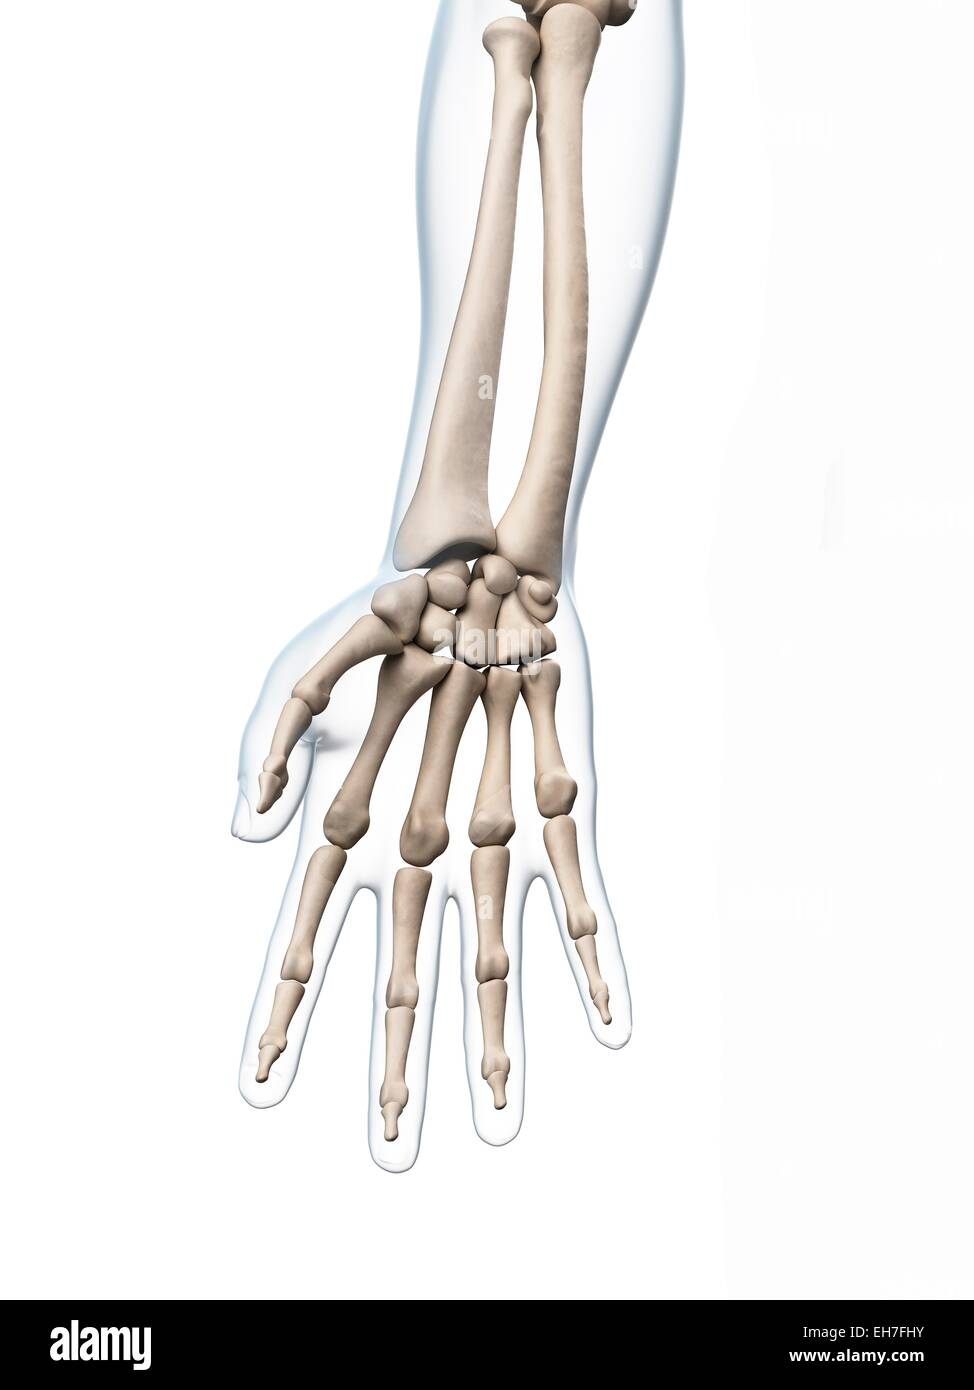 Human hand bones, artwork - Stock Image